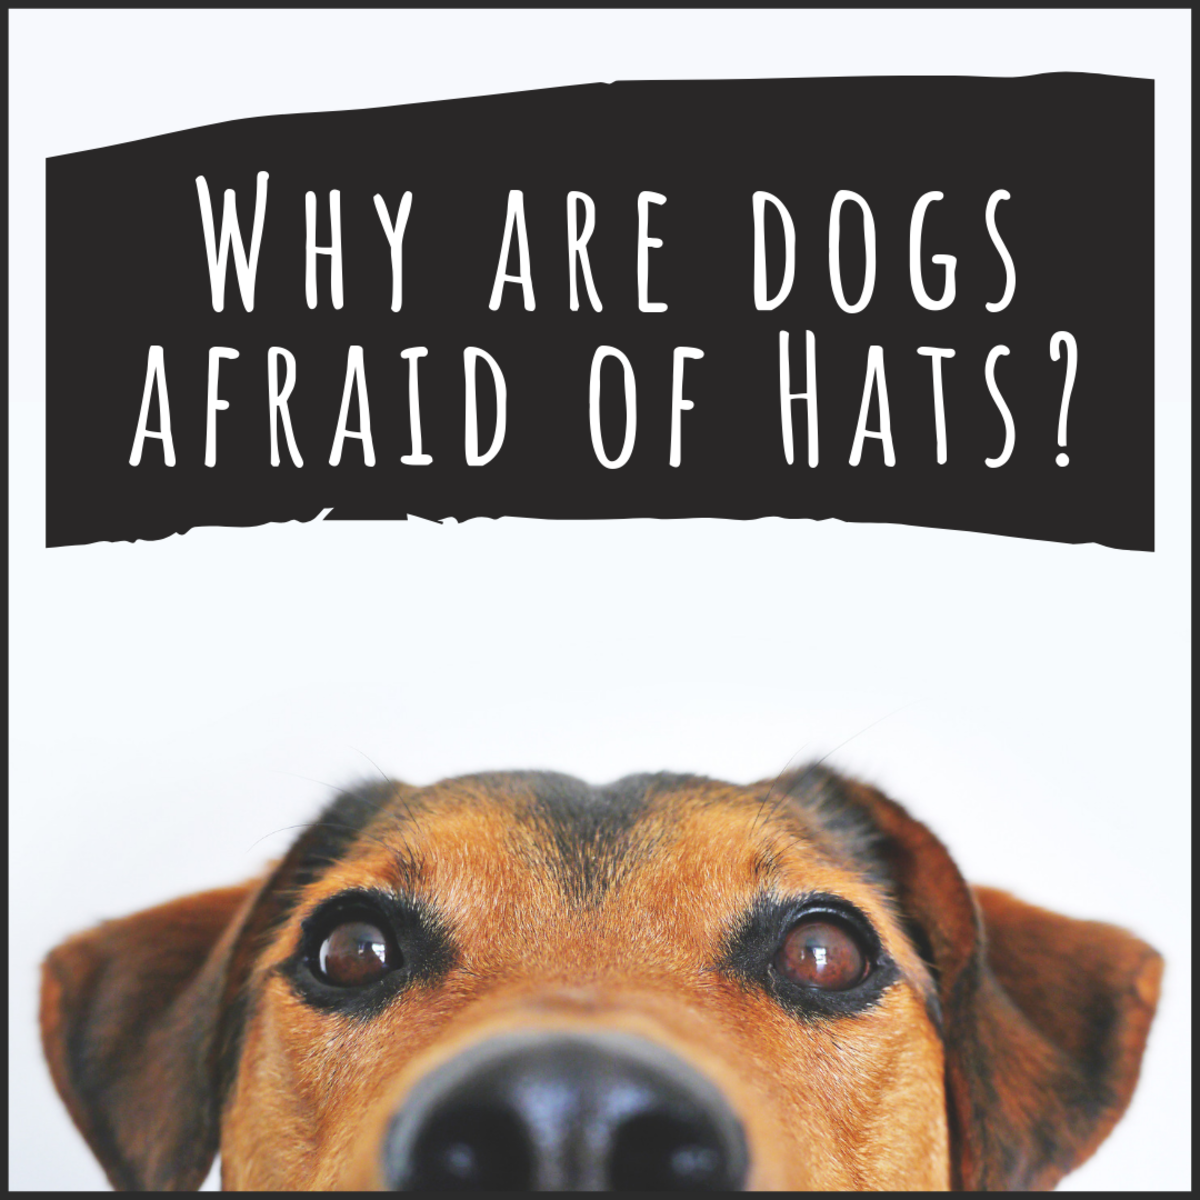 Reasons Why Dogs Are Afraid of Hats